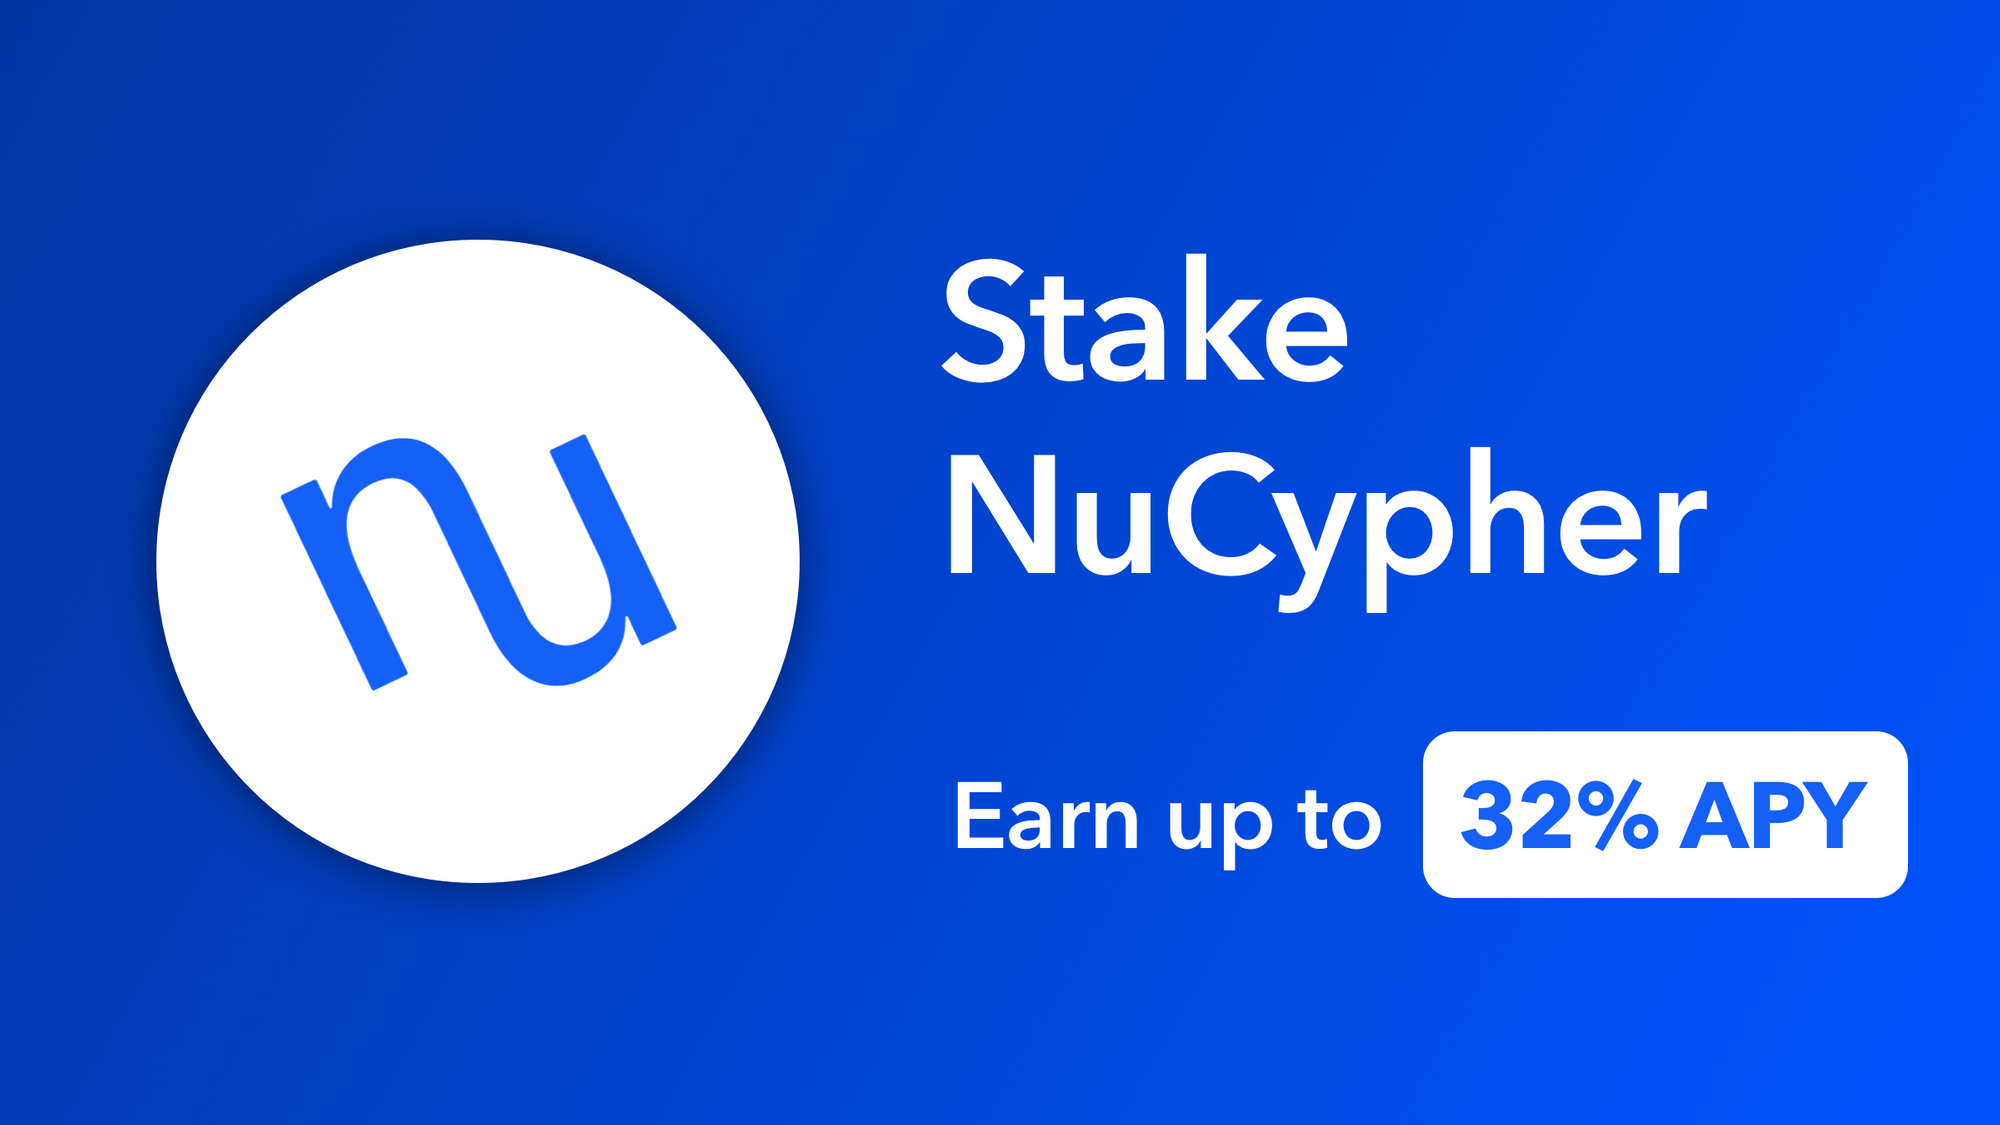 Stake NuCypher (NU) on CoinList and earn up to 32% APY